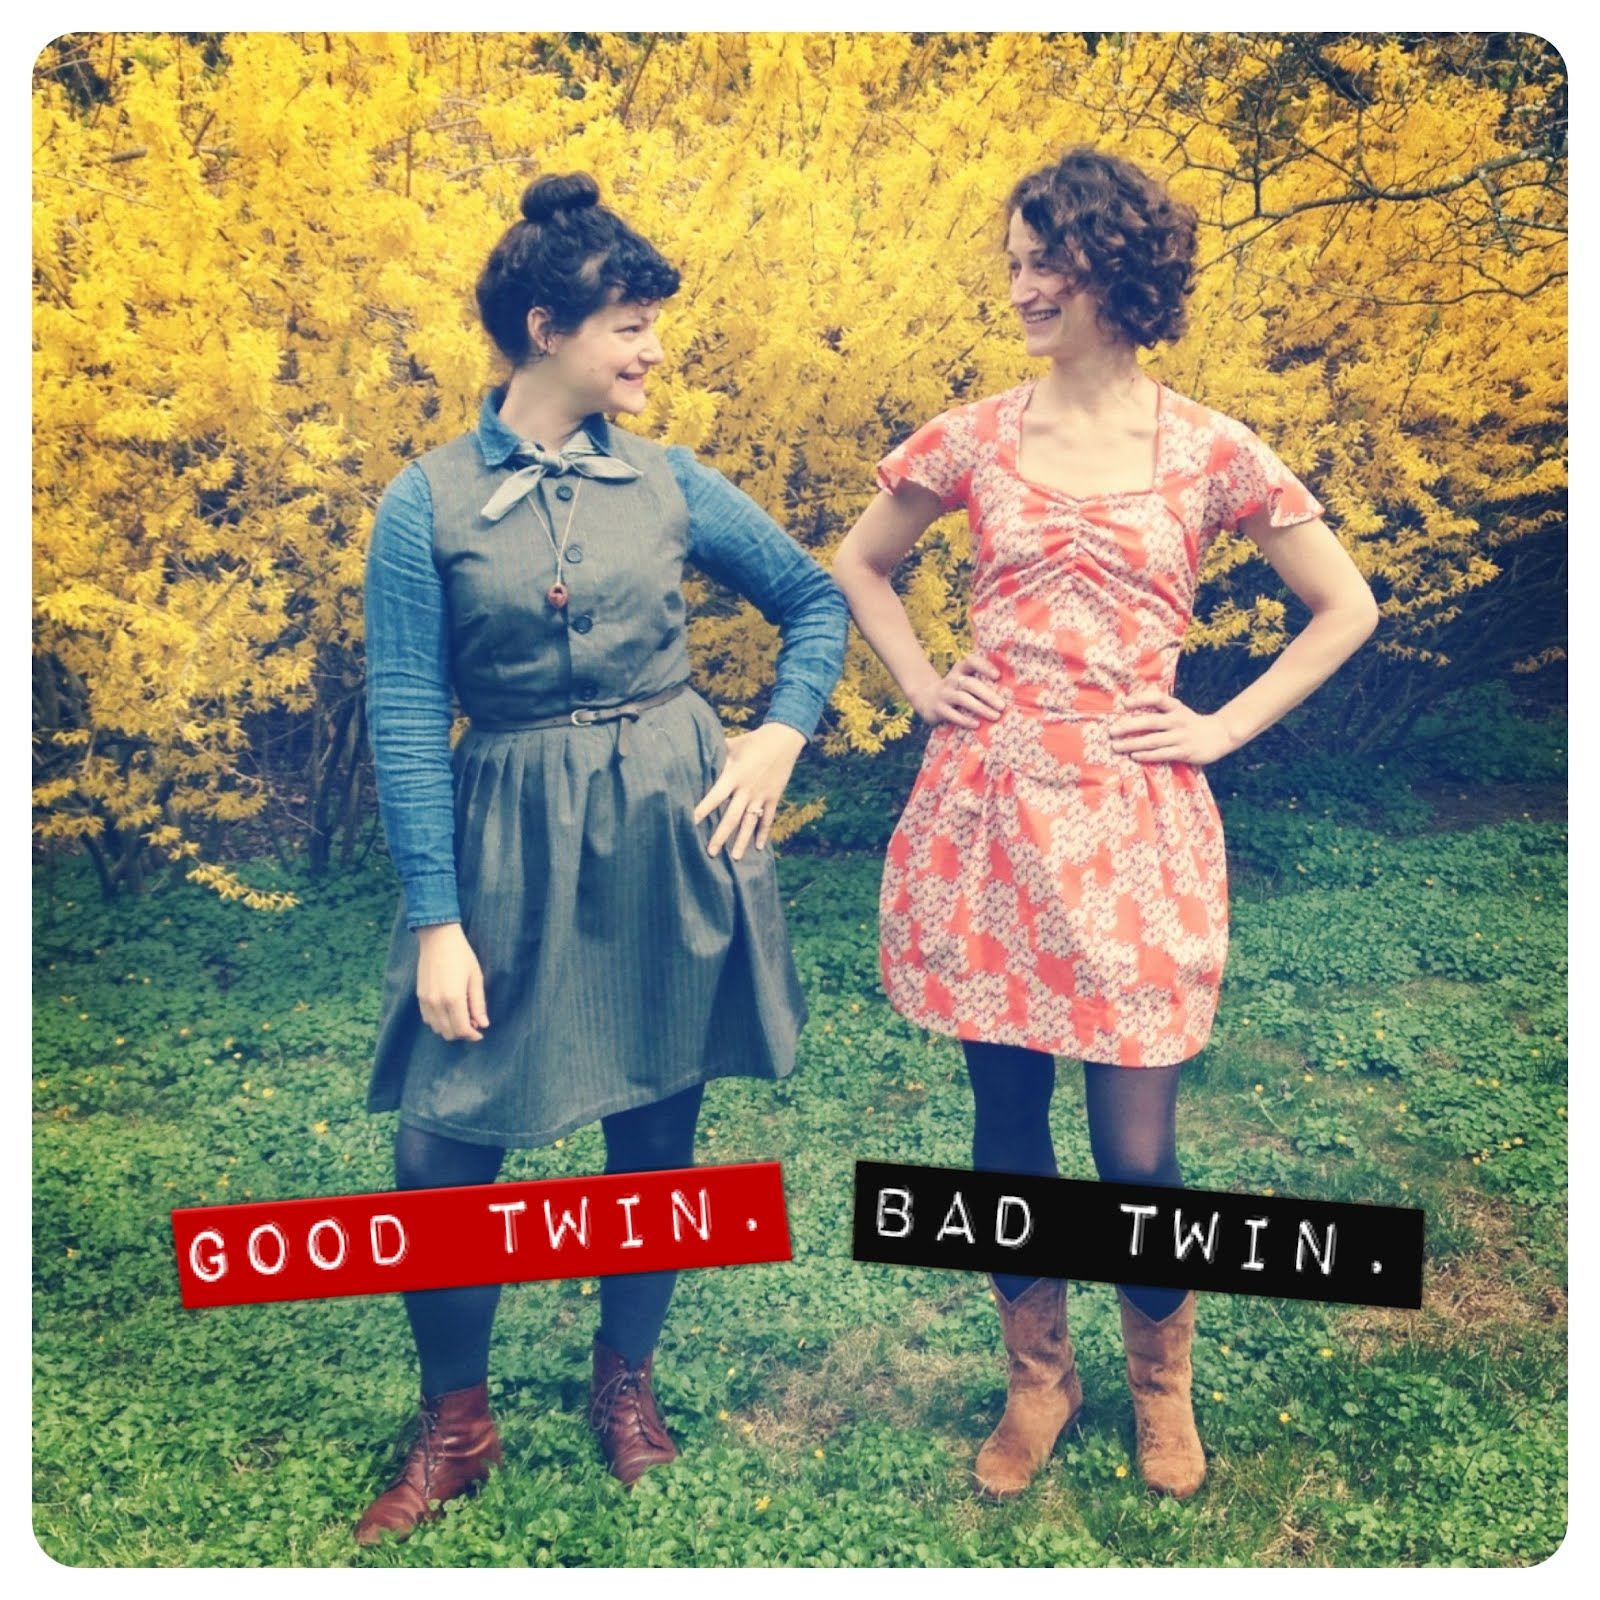 Good Twin. Bad Twin.